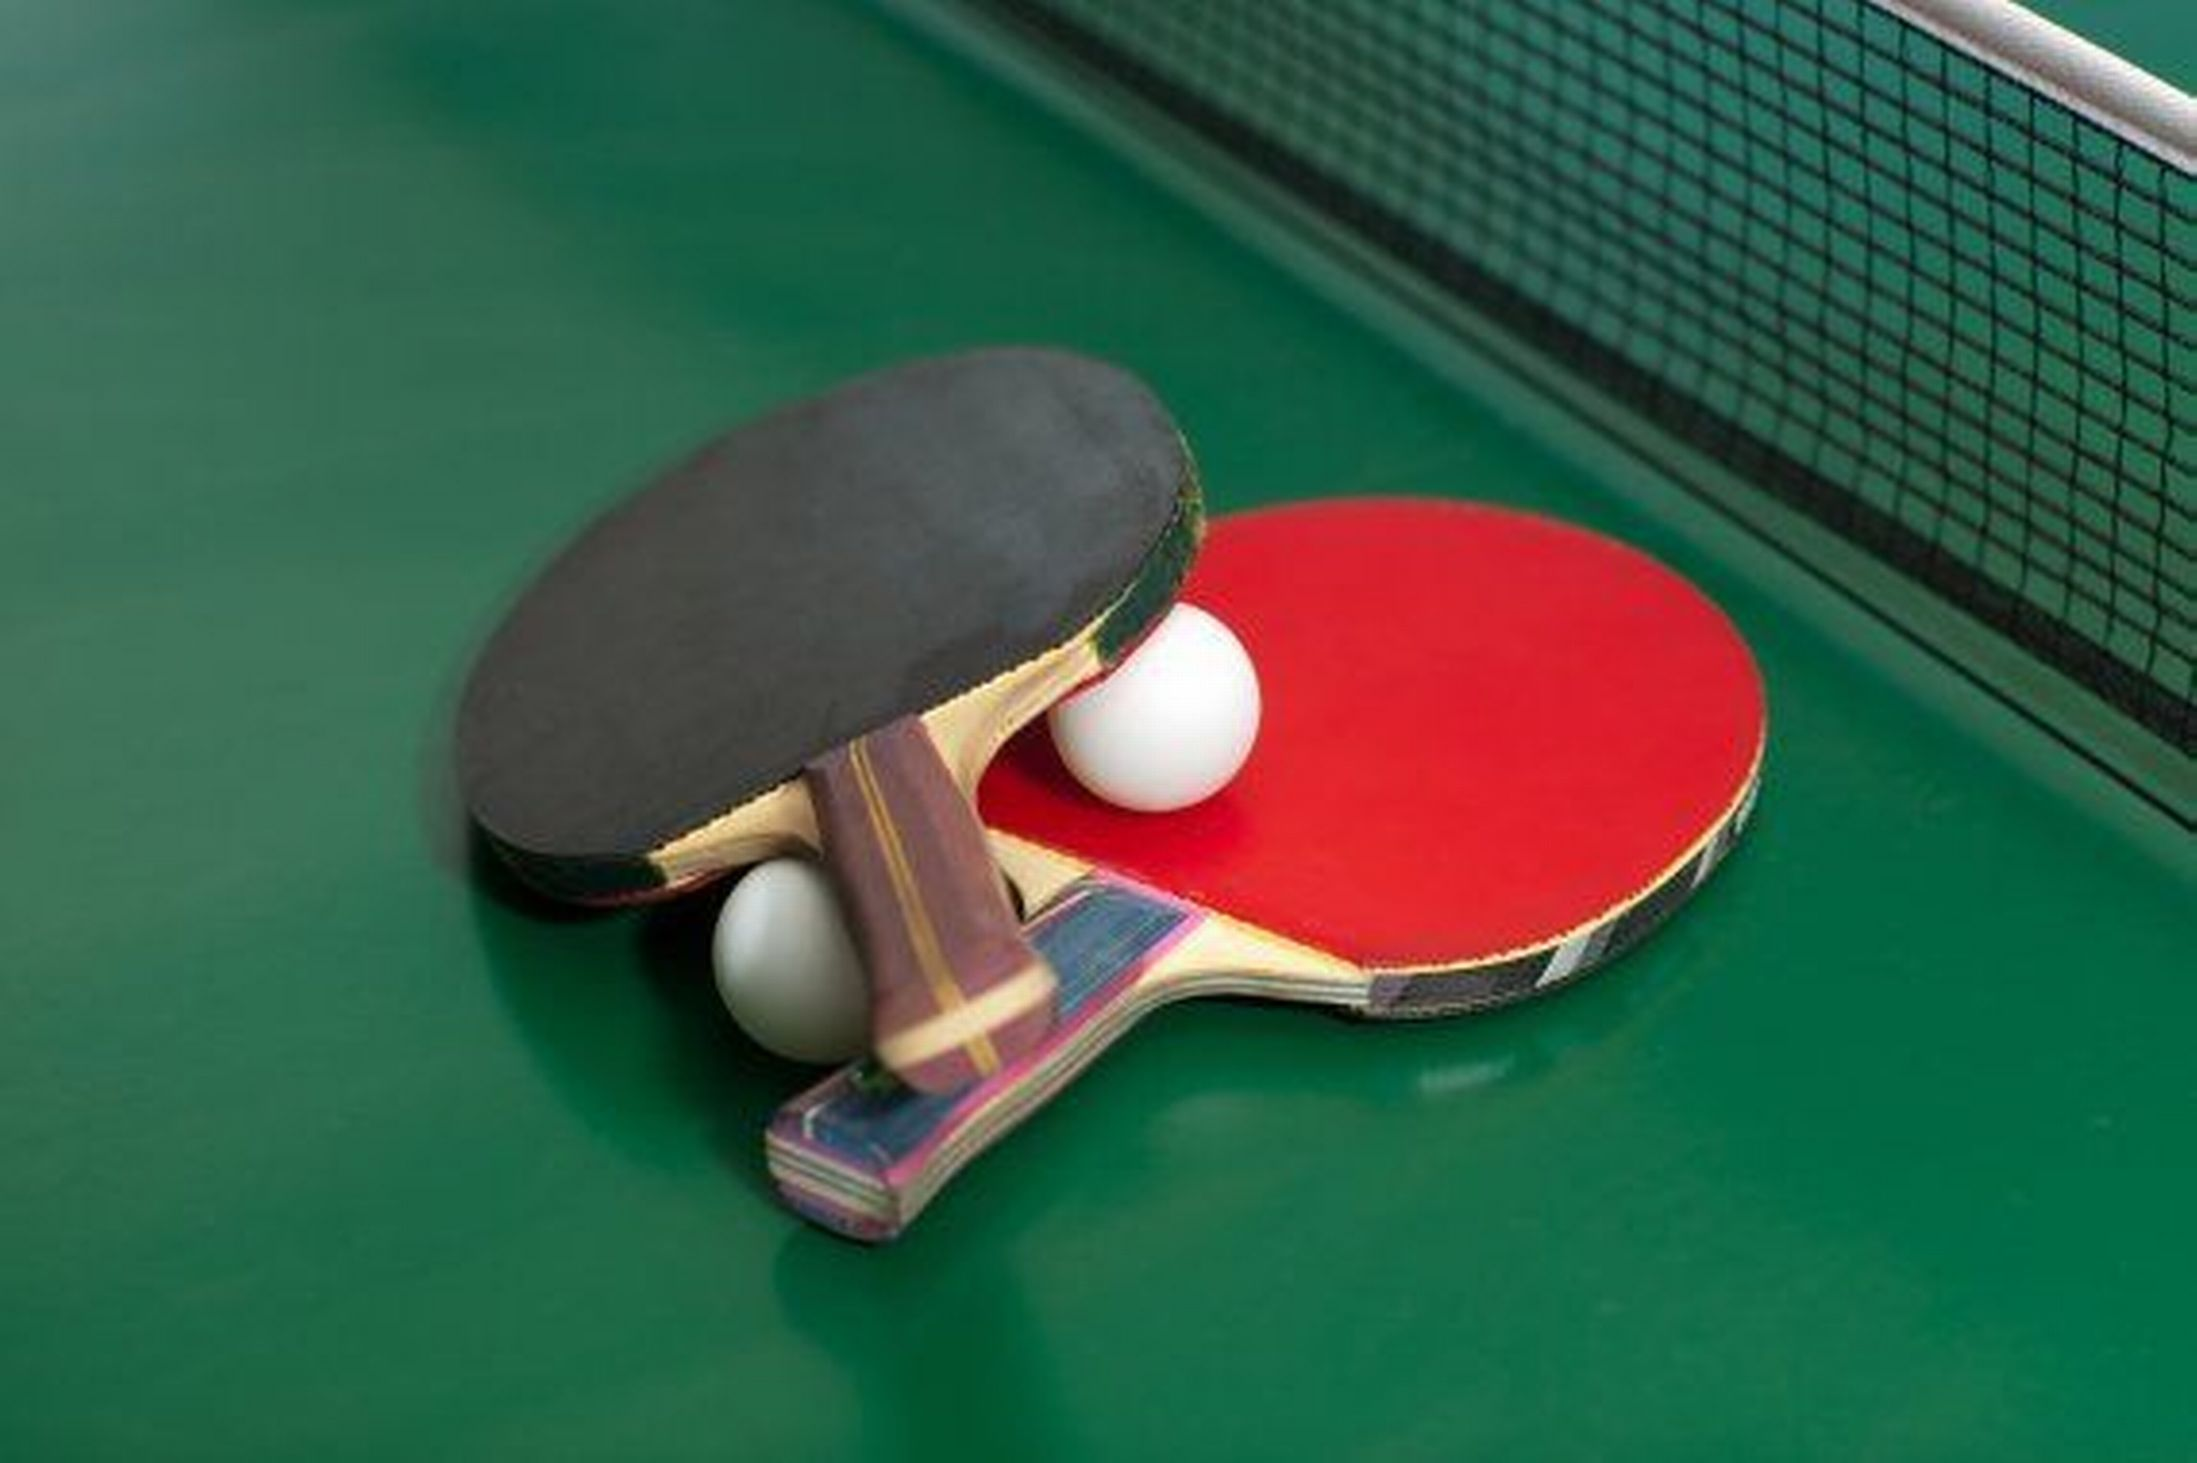 5 Tricks To Get Better At Your Table Tennis Shots